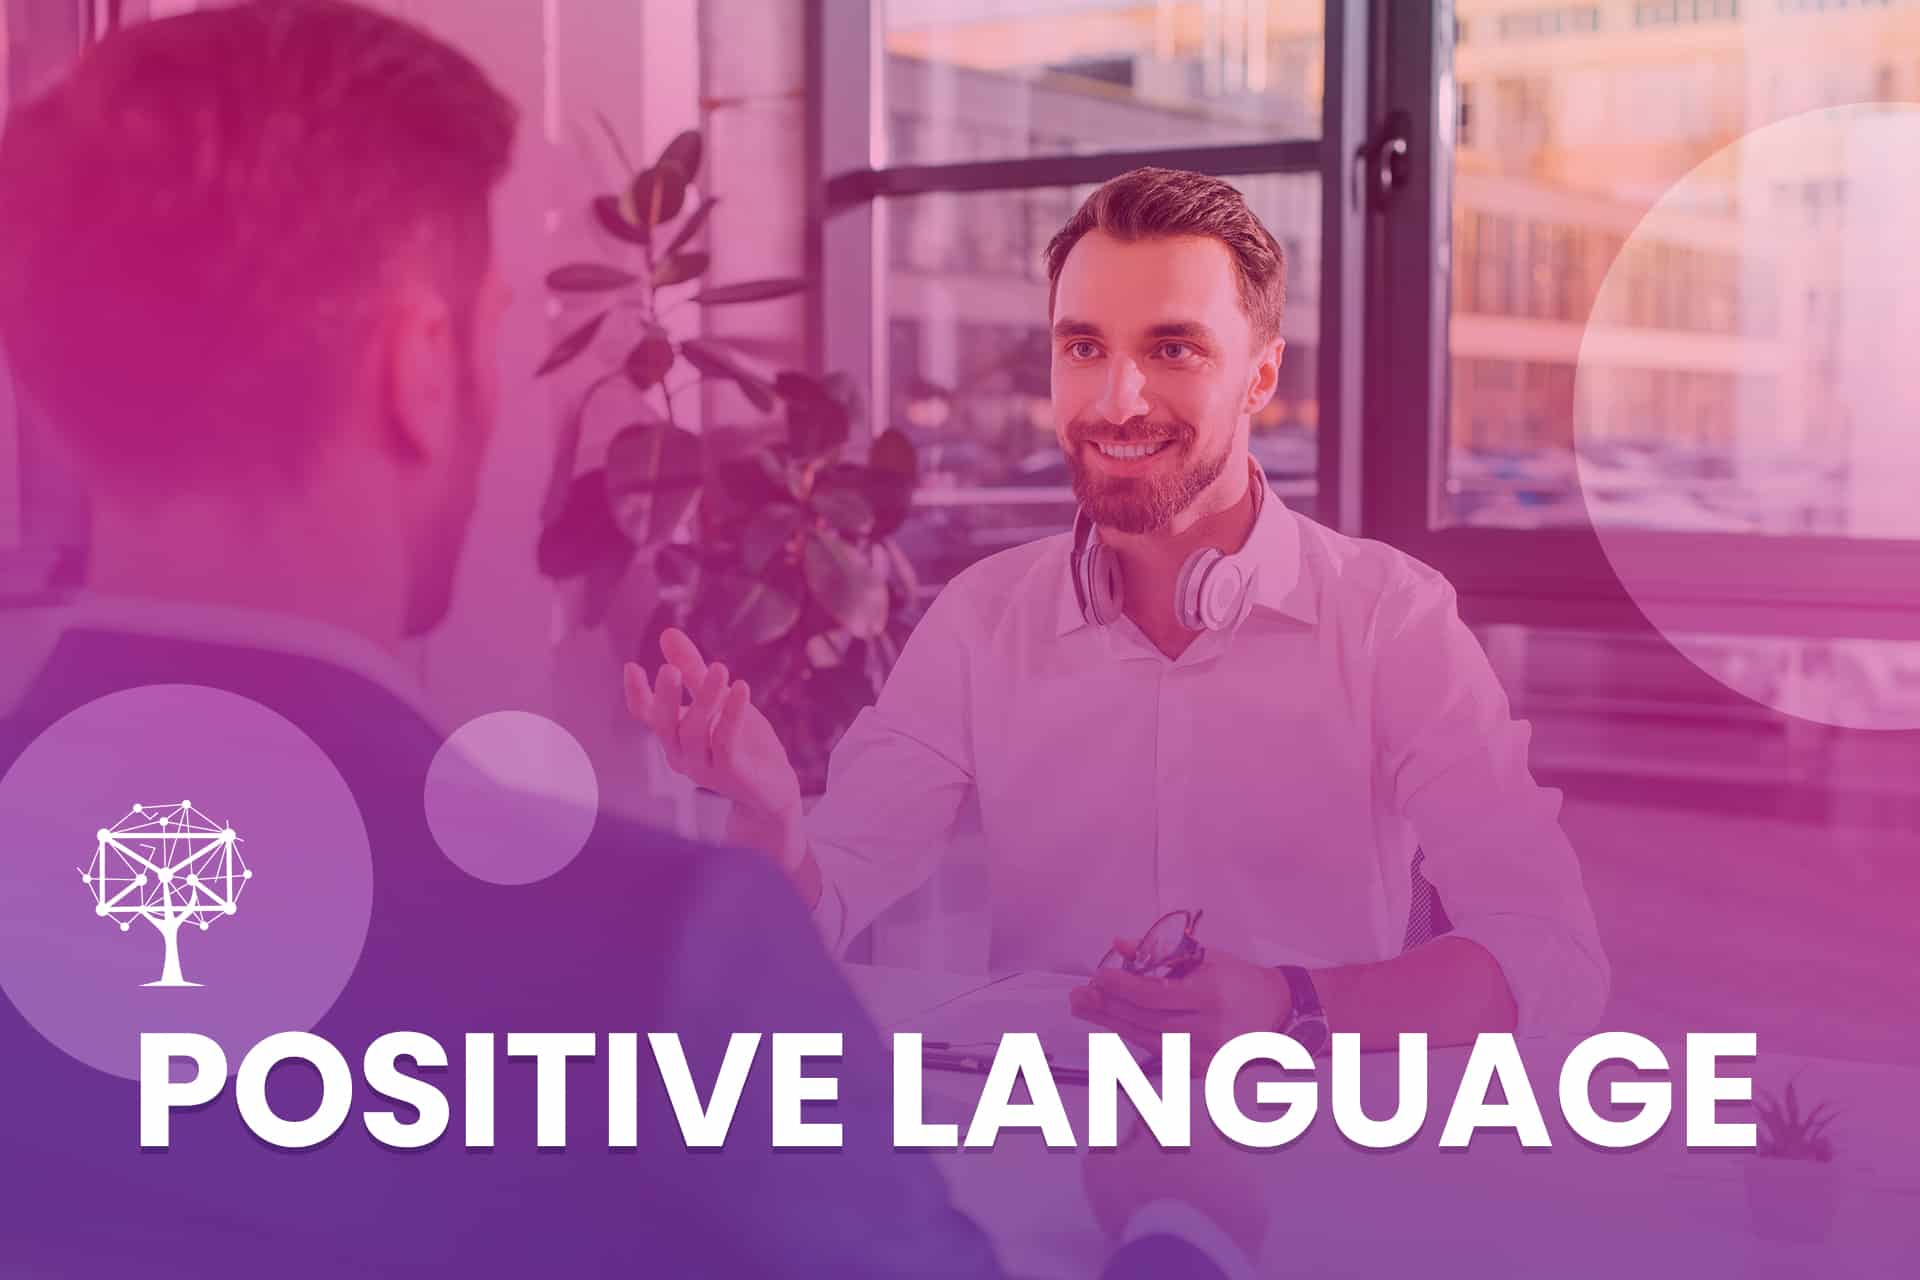 Positive Language is a customer service skill